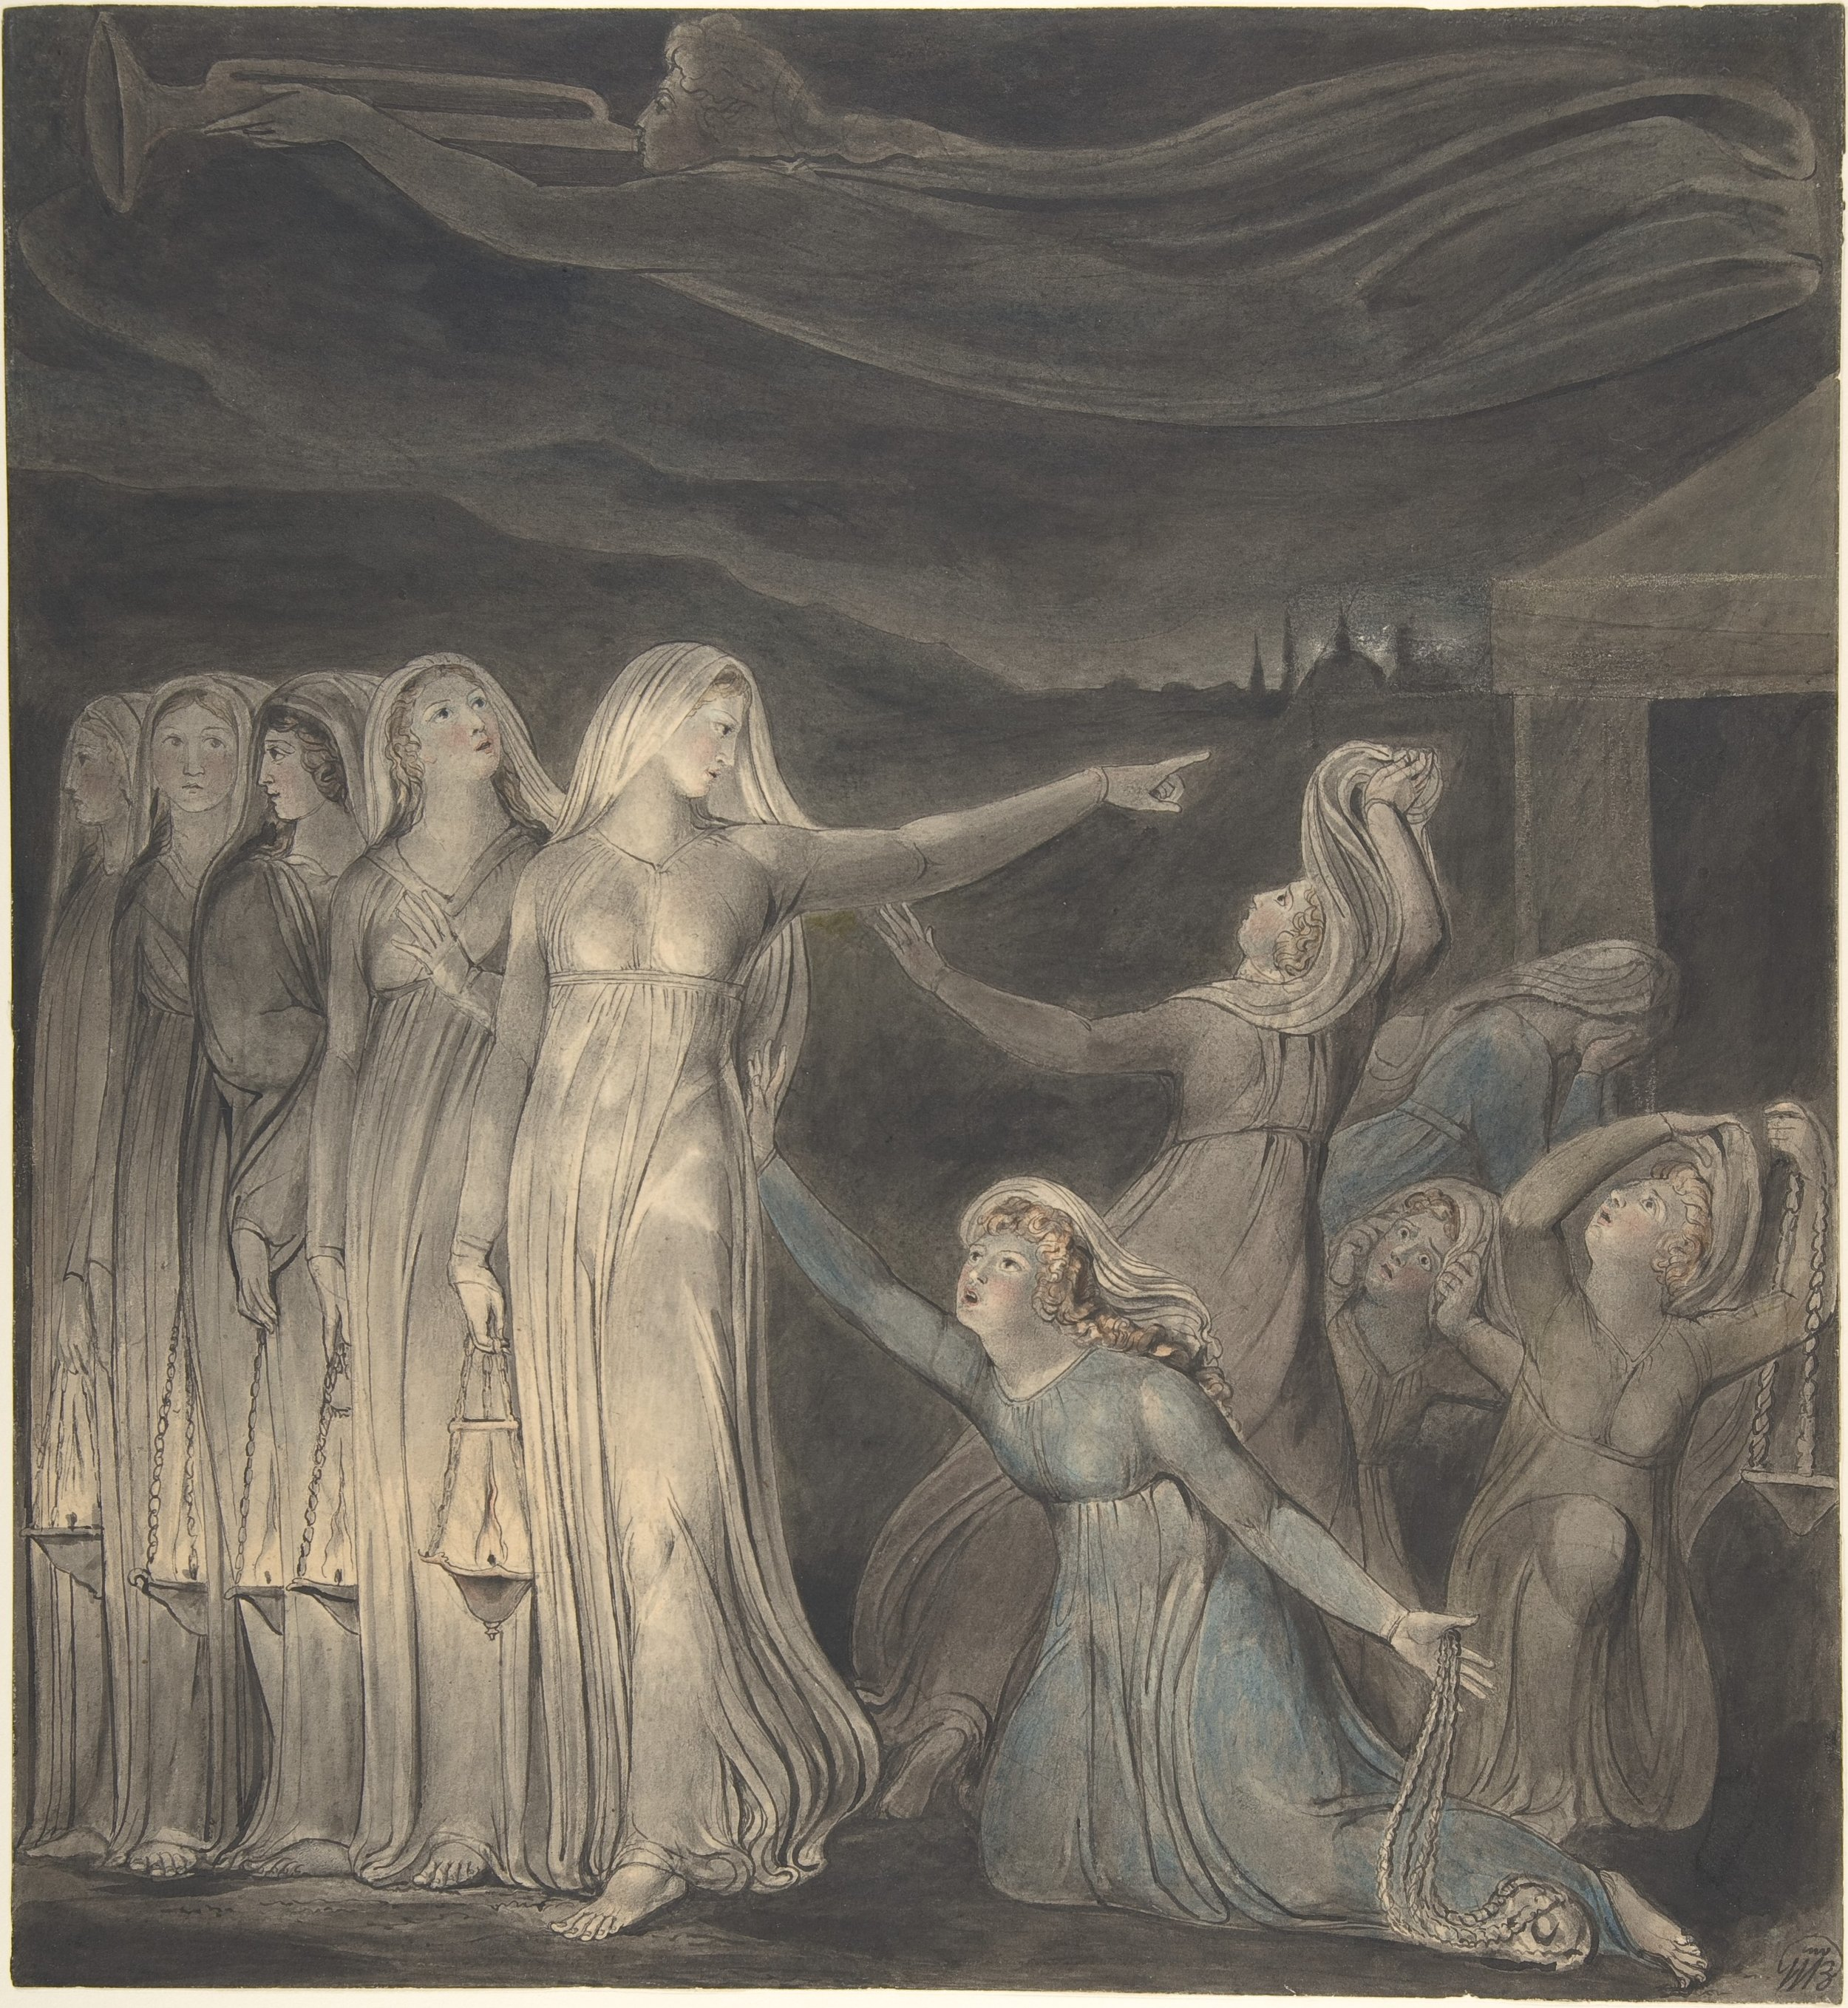 The Parable of the Wise and Foolish Virgins by William Blake (1880)